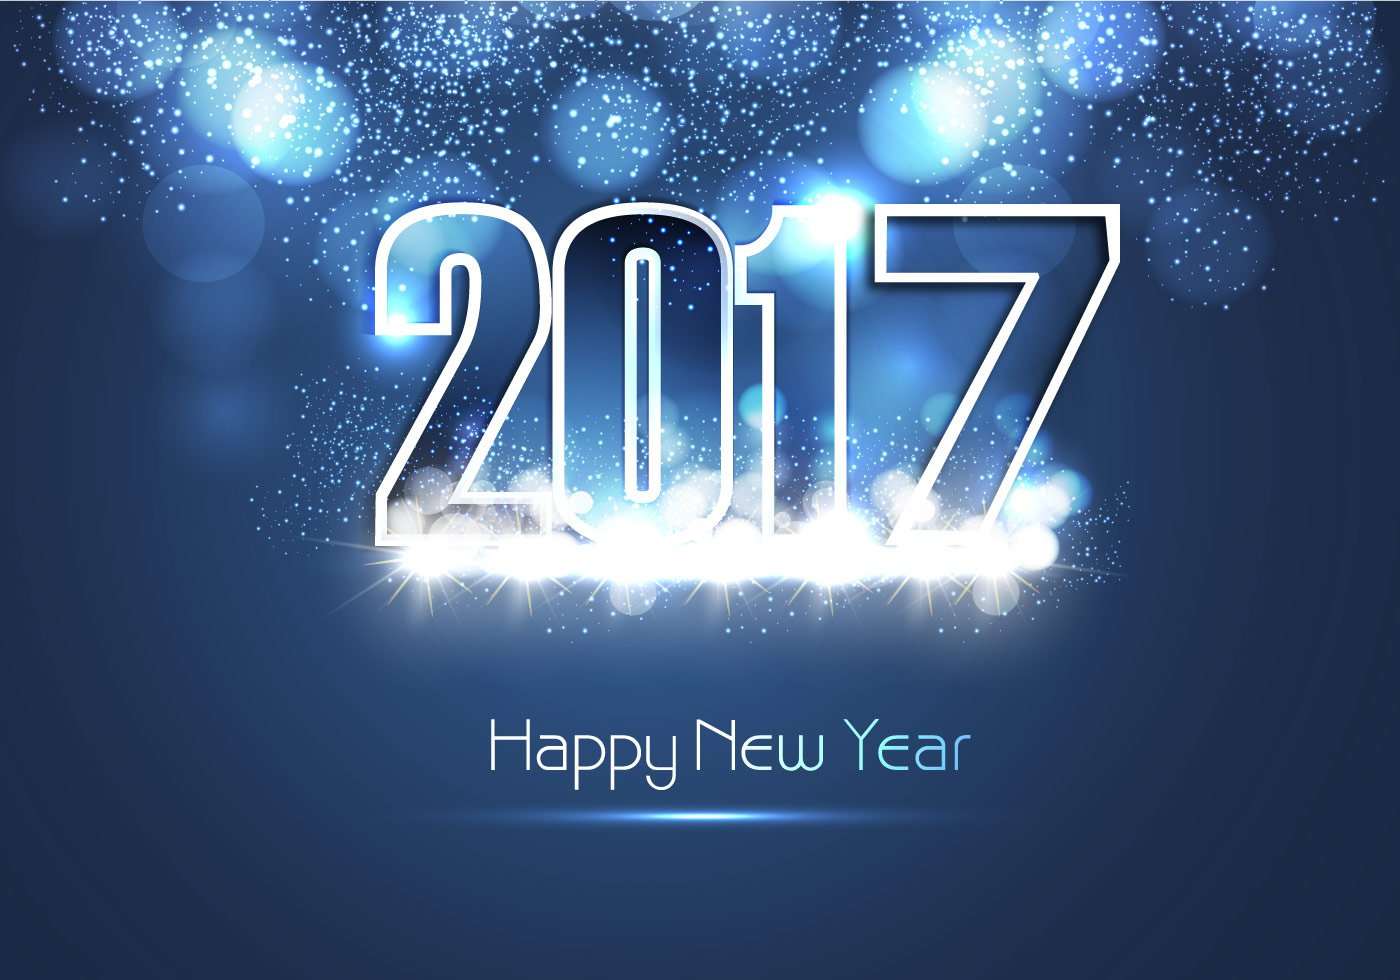 Happy New Year 2017 Images For Facebook